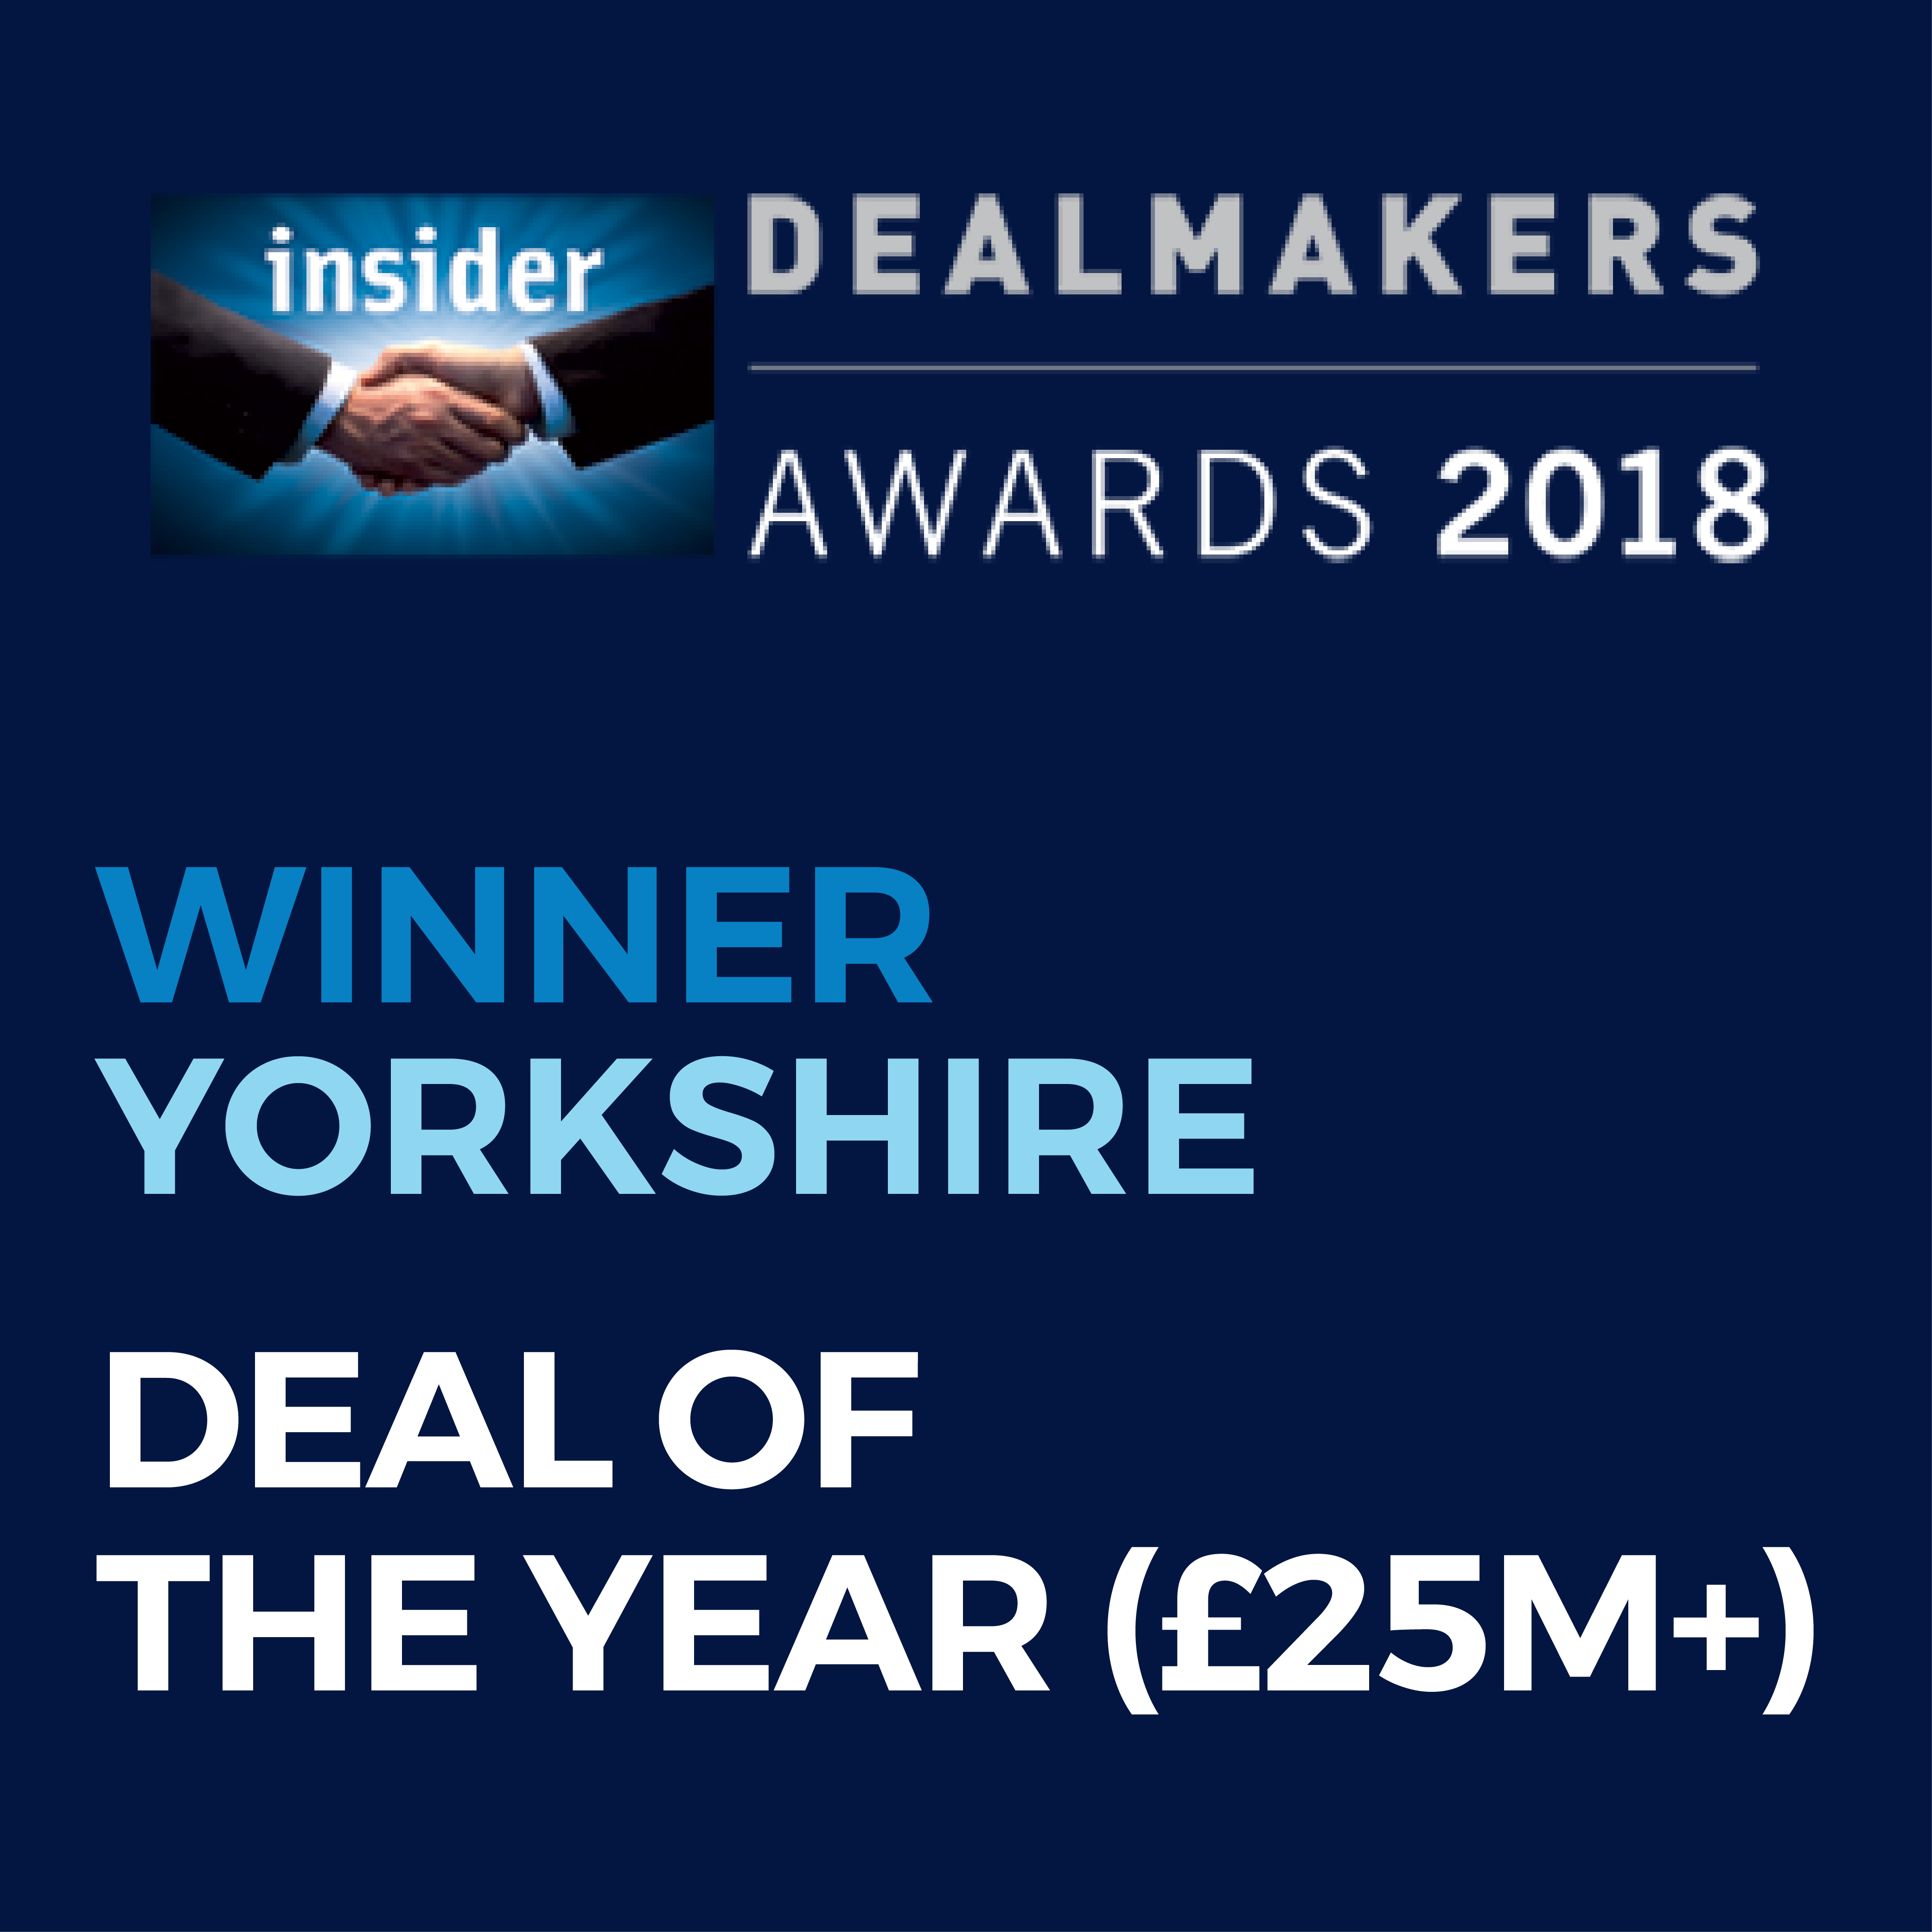 Insider Dealmakers Awards 2018 – Winner, Yorkshire – Deal of the Year (£25m+)